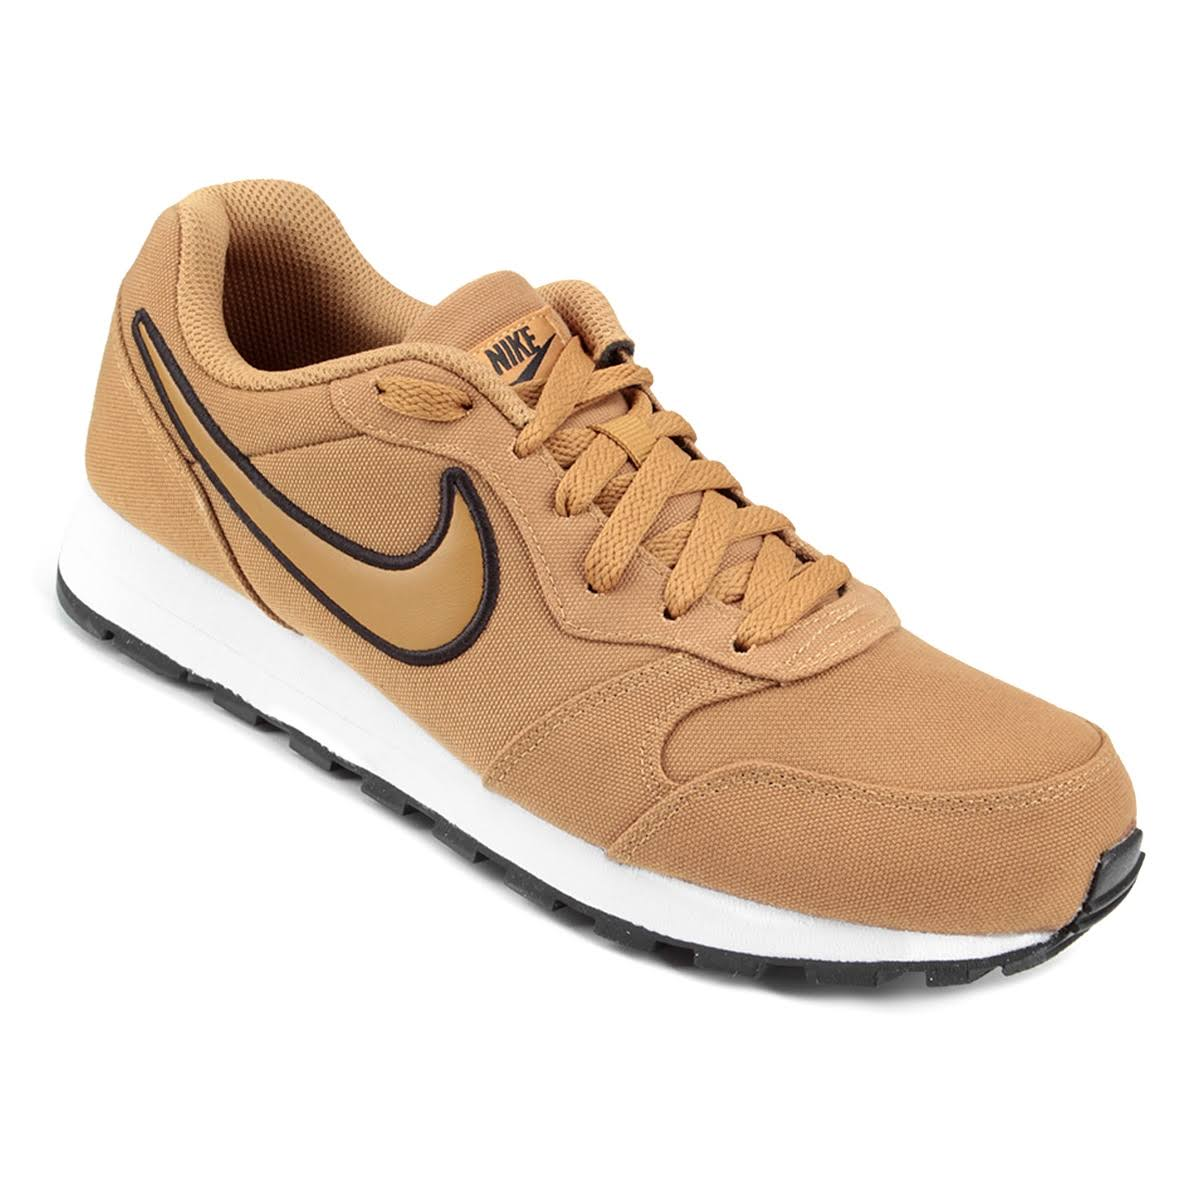 39 Nike Bege Md Masculino Escuro 2 Tênis Runner Se zPv7qw